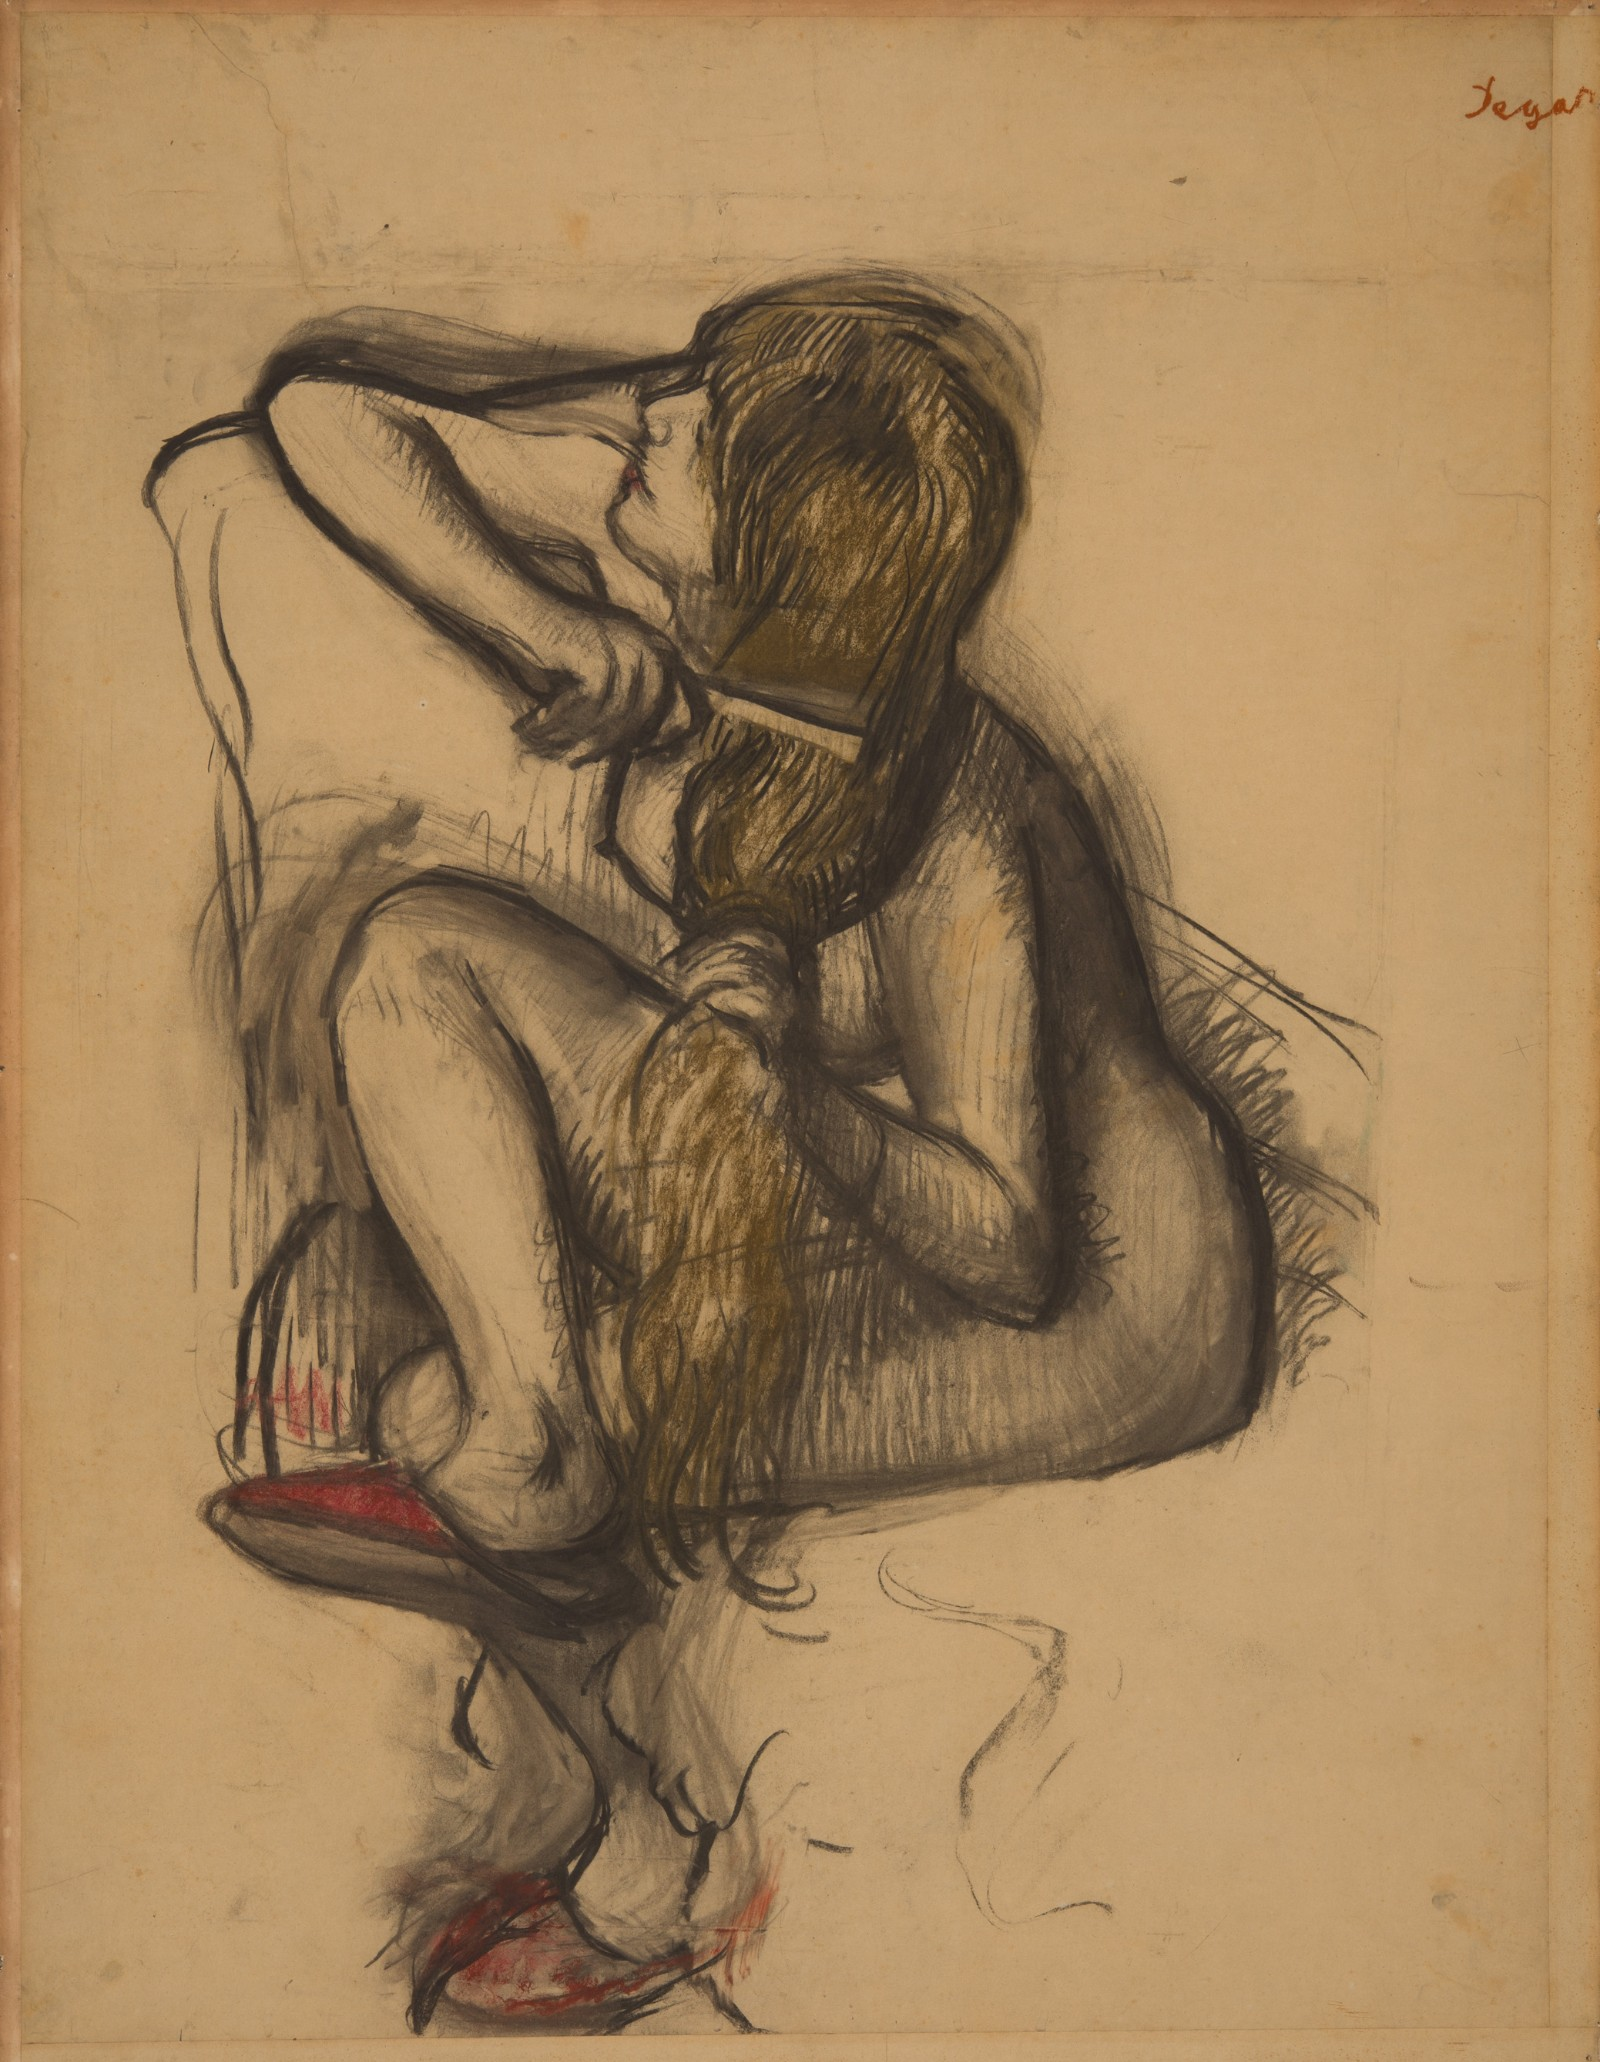 Charcoal drawing of a nude woman combing her long hair, wearing red shoes.